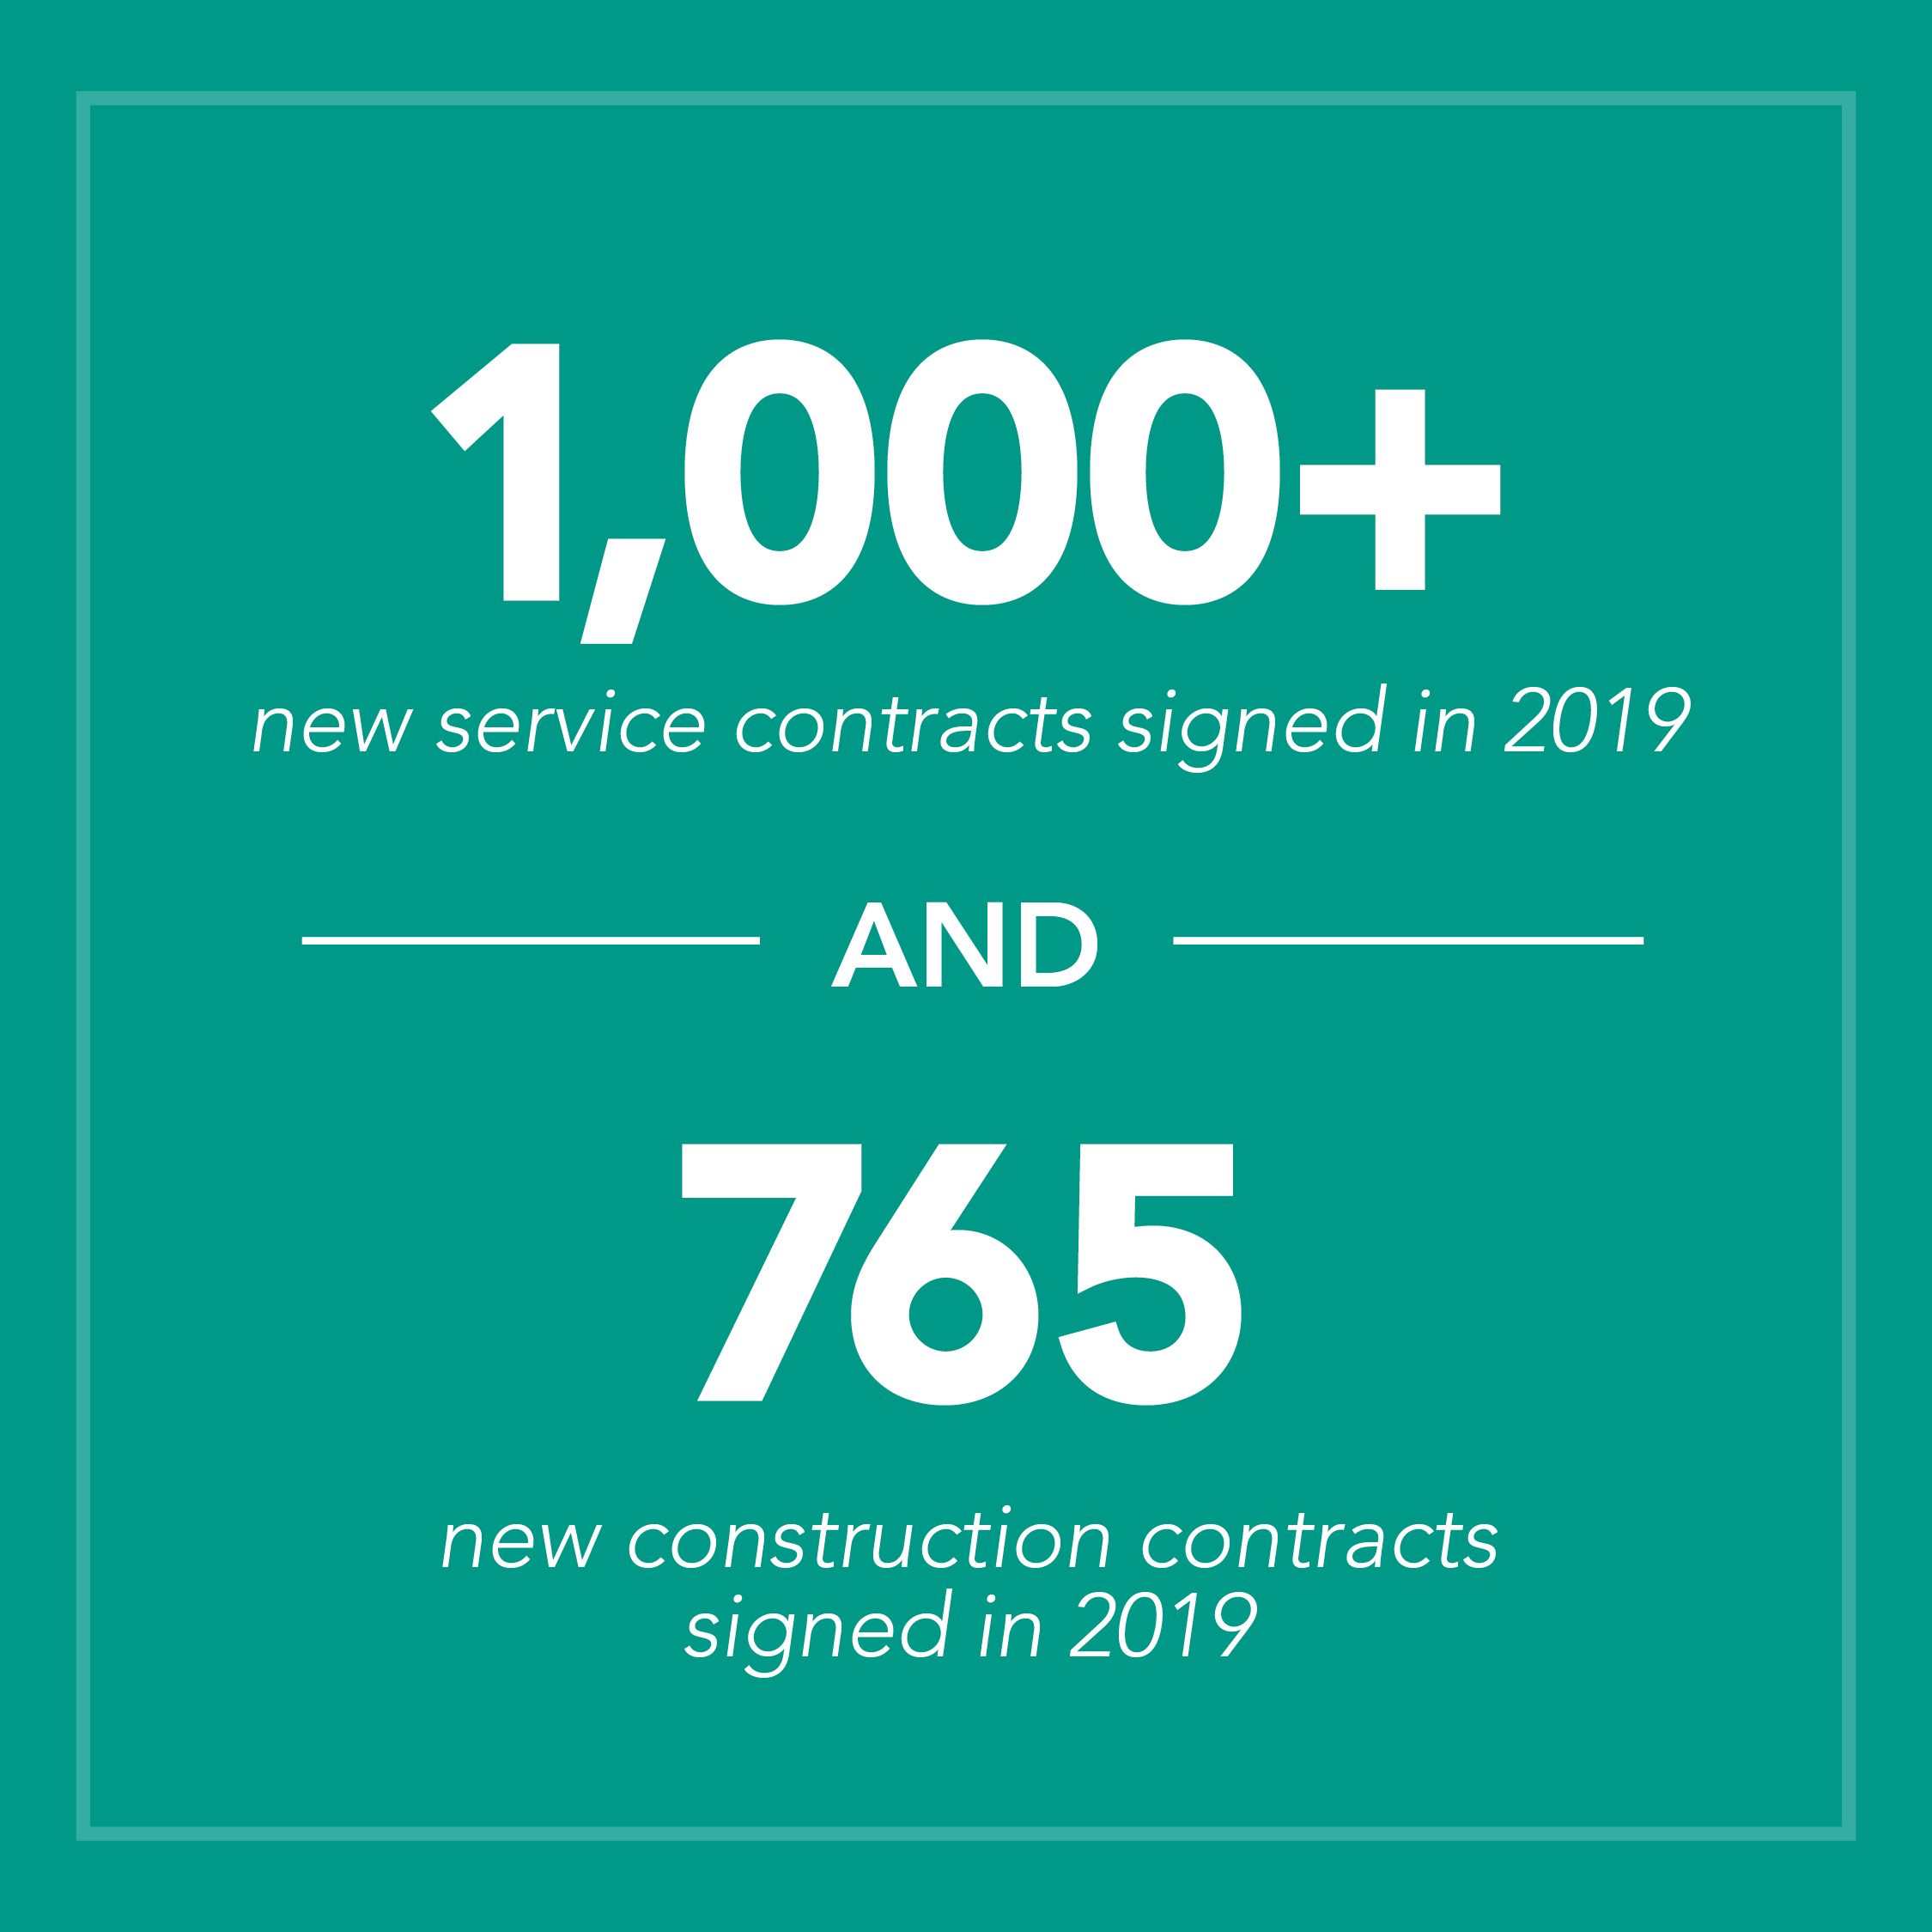 1,000 plus new service contracts signed in 2019 and 765 new construction contracts signed in 2019